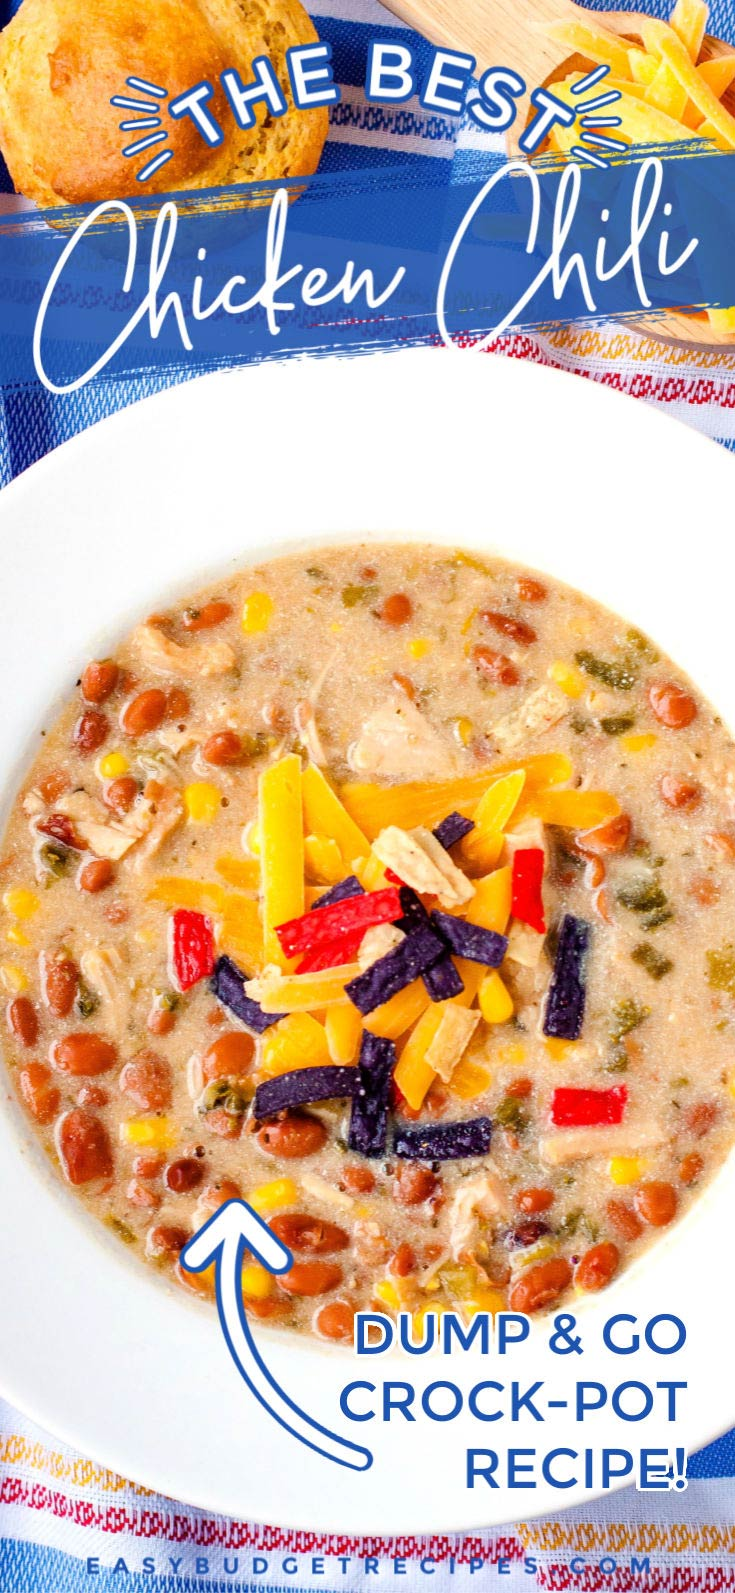 This Crock-Pot White Chicken Chili recipe is an easy dump-and-go recipe that's perfect for weeknights. It serves 6-8 people and costs $12.40 to make. That's just $2.07 per serving! via @easybudgetrecipes